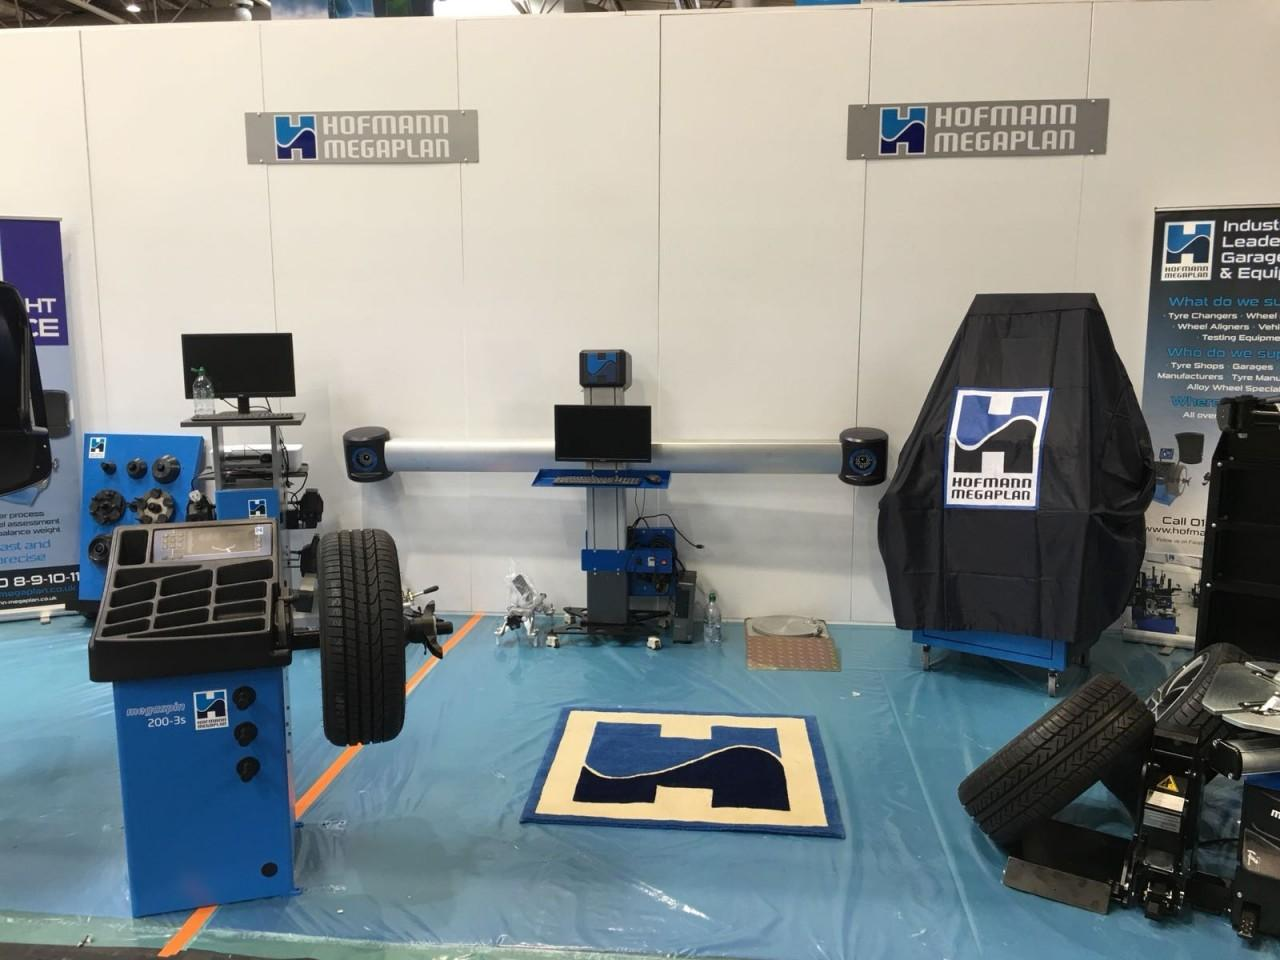 Hofmann Megaplan stand at Automechanika 2018